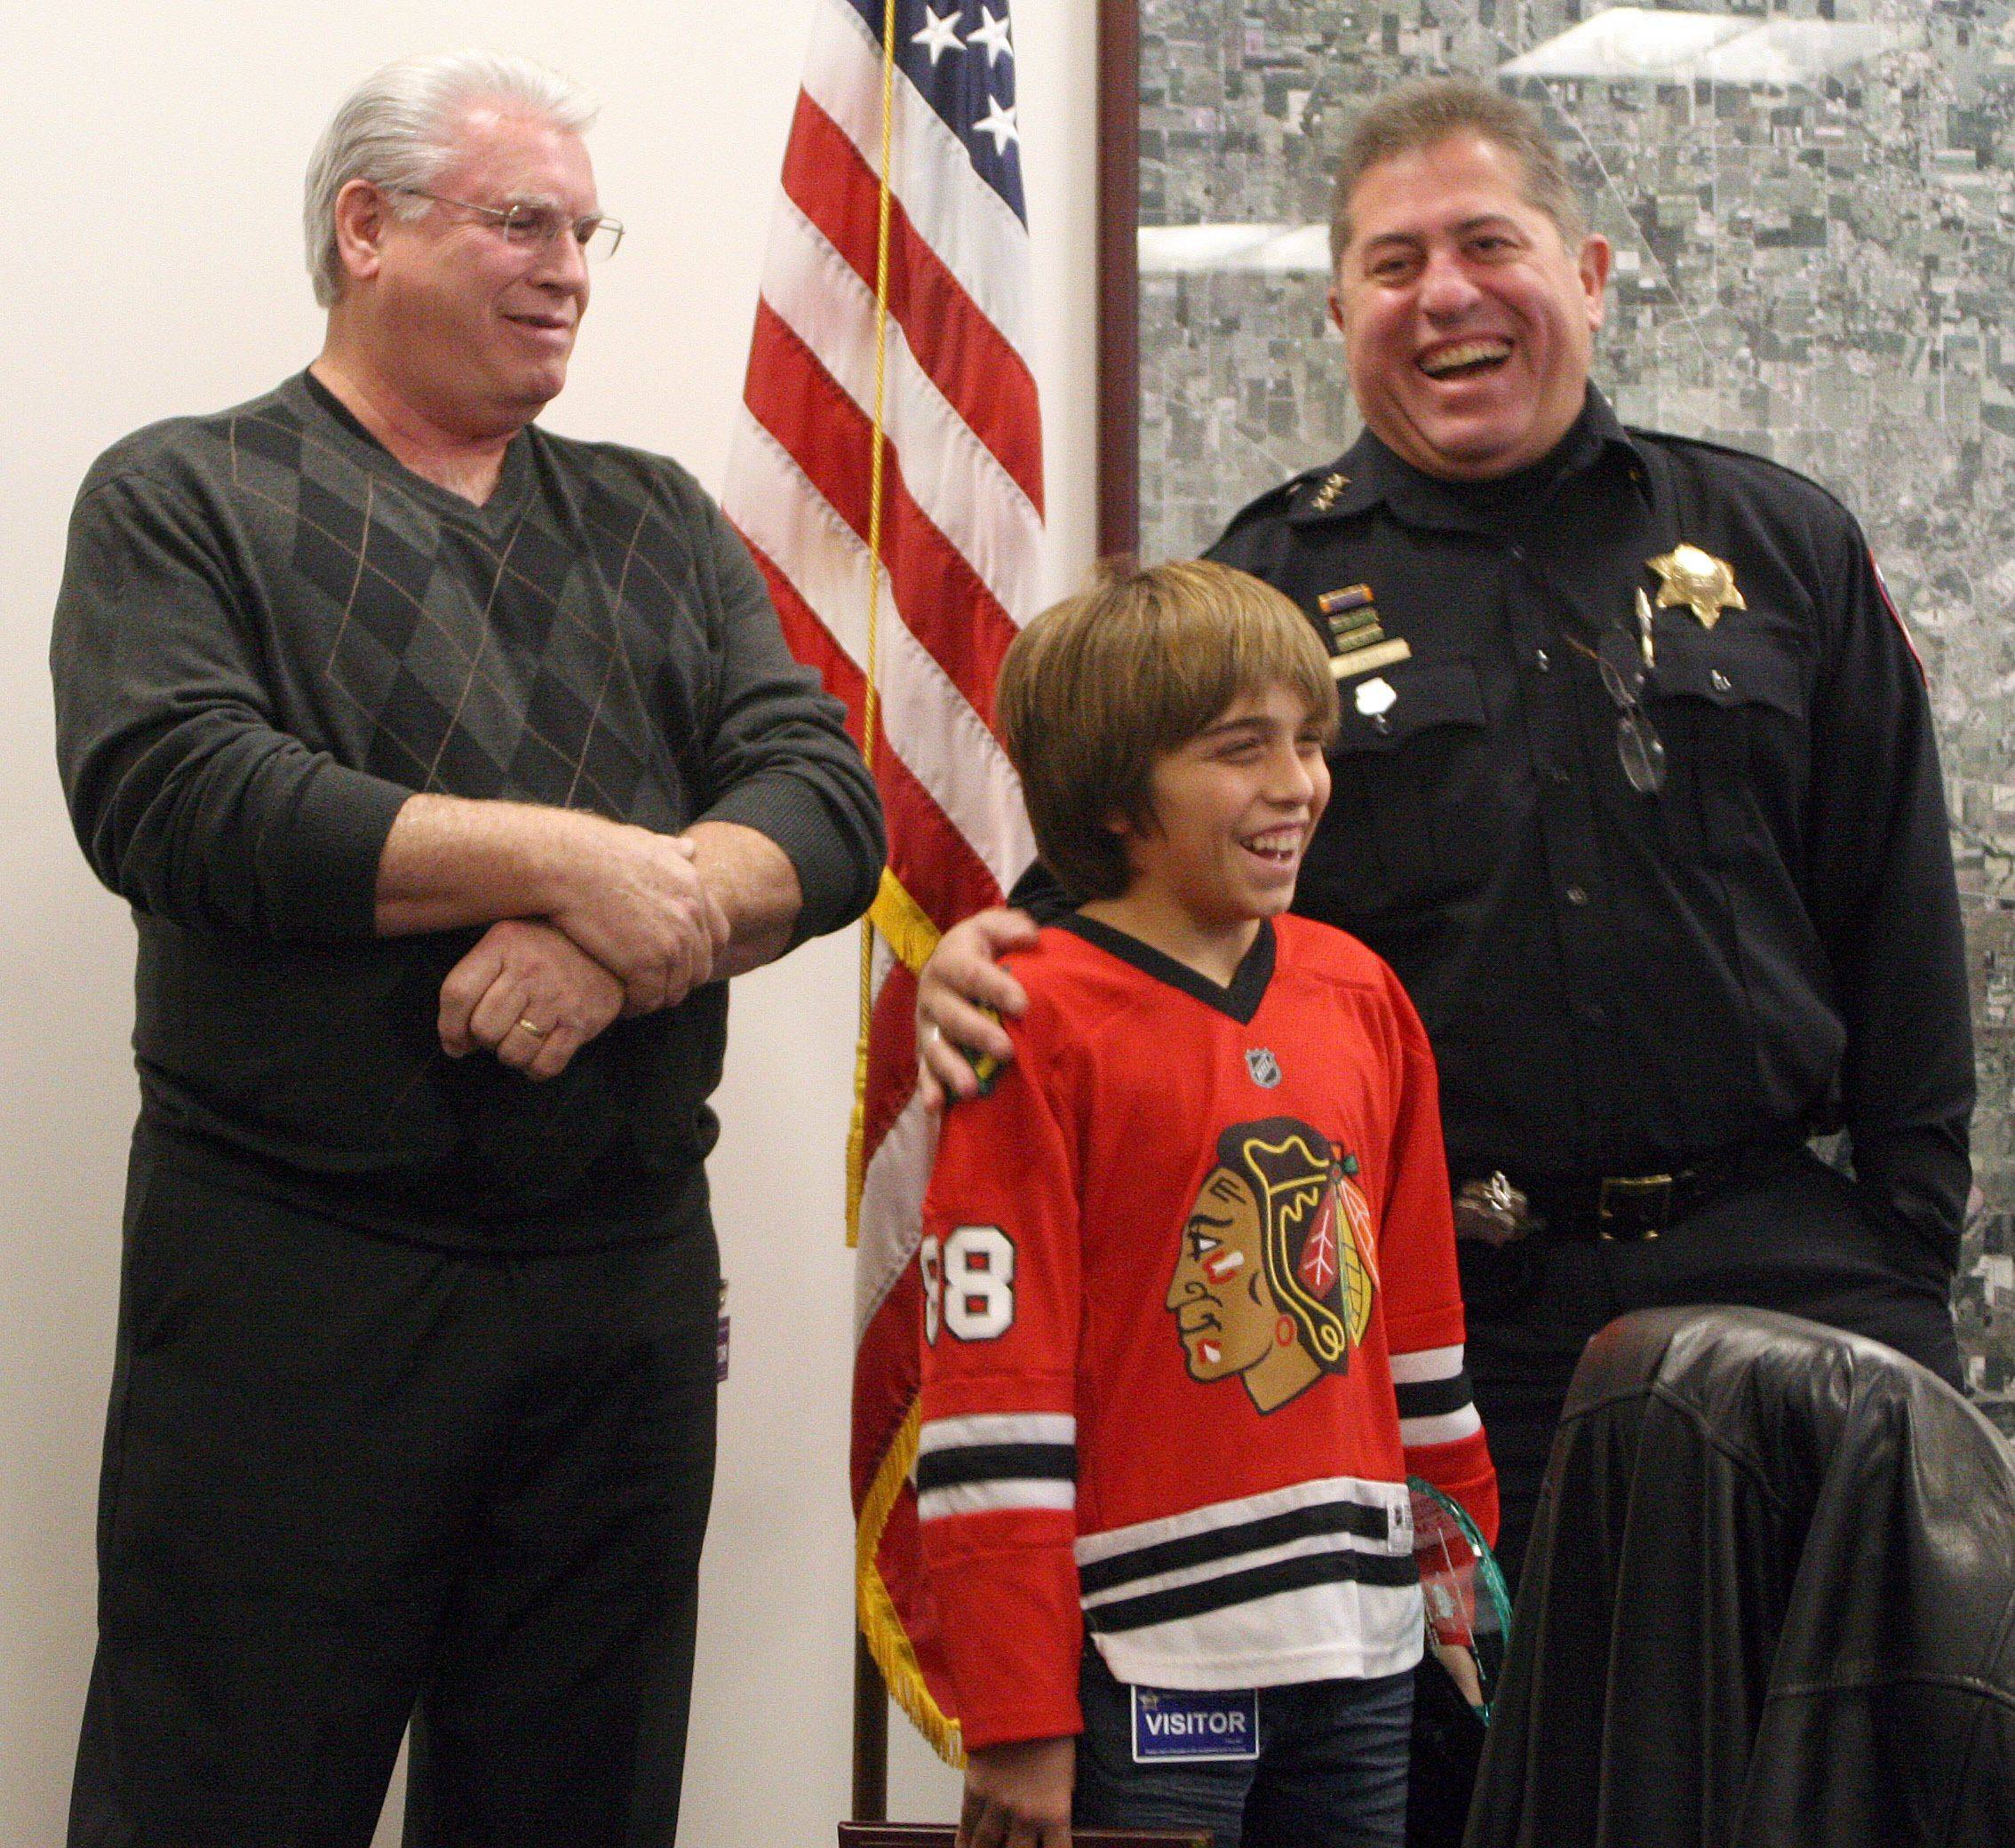 Richard Ebey of Montgomery, Cole Rutter, 13, of Sugar Grove, and Kane County Sheriff Pat Perez share a laugh after Cole was awarded the 2011 Roscoe Ebey Award at the sheriff's office Thursday. The annual award is bestowed based on outstanding performance in the community. Cole has raised large sums of money for The Children's Tumor Foundation.